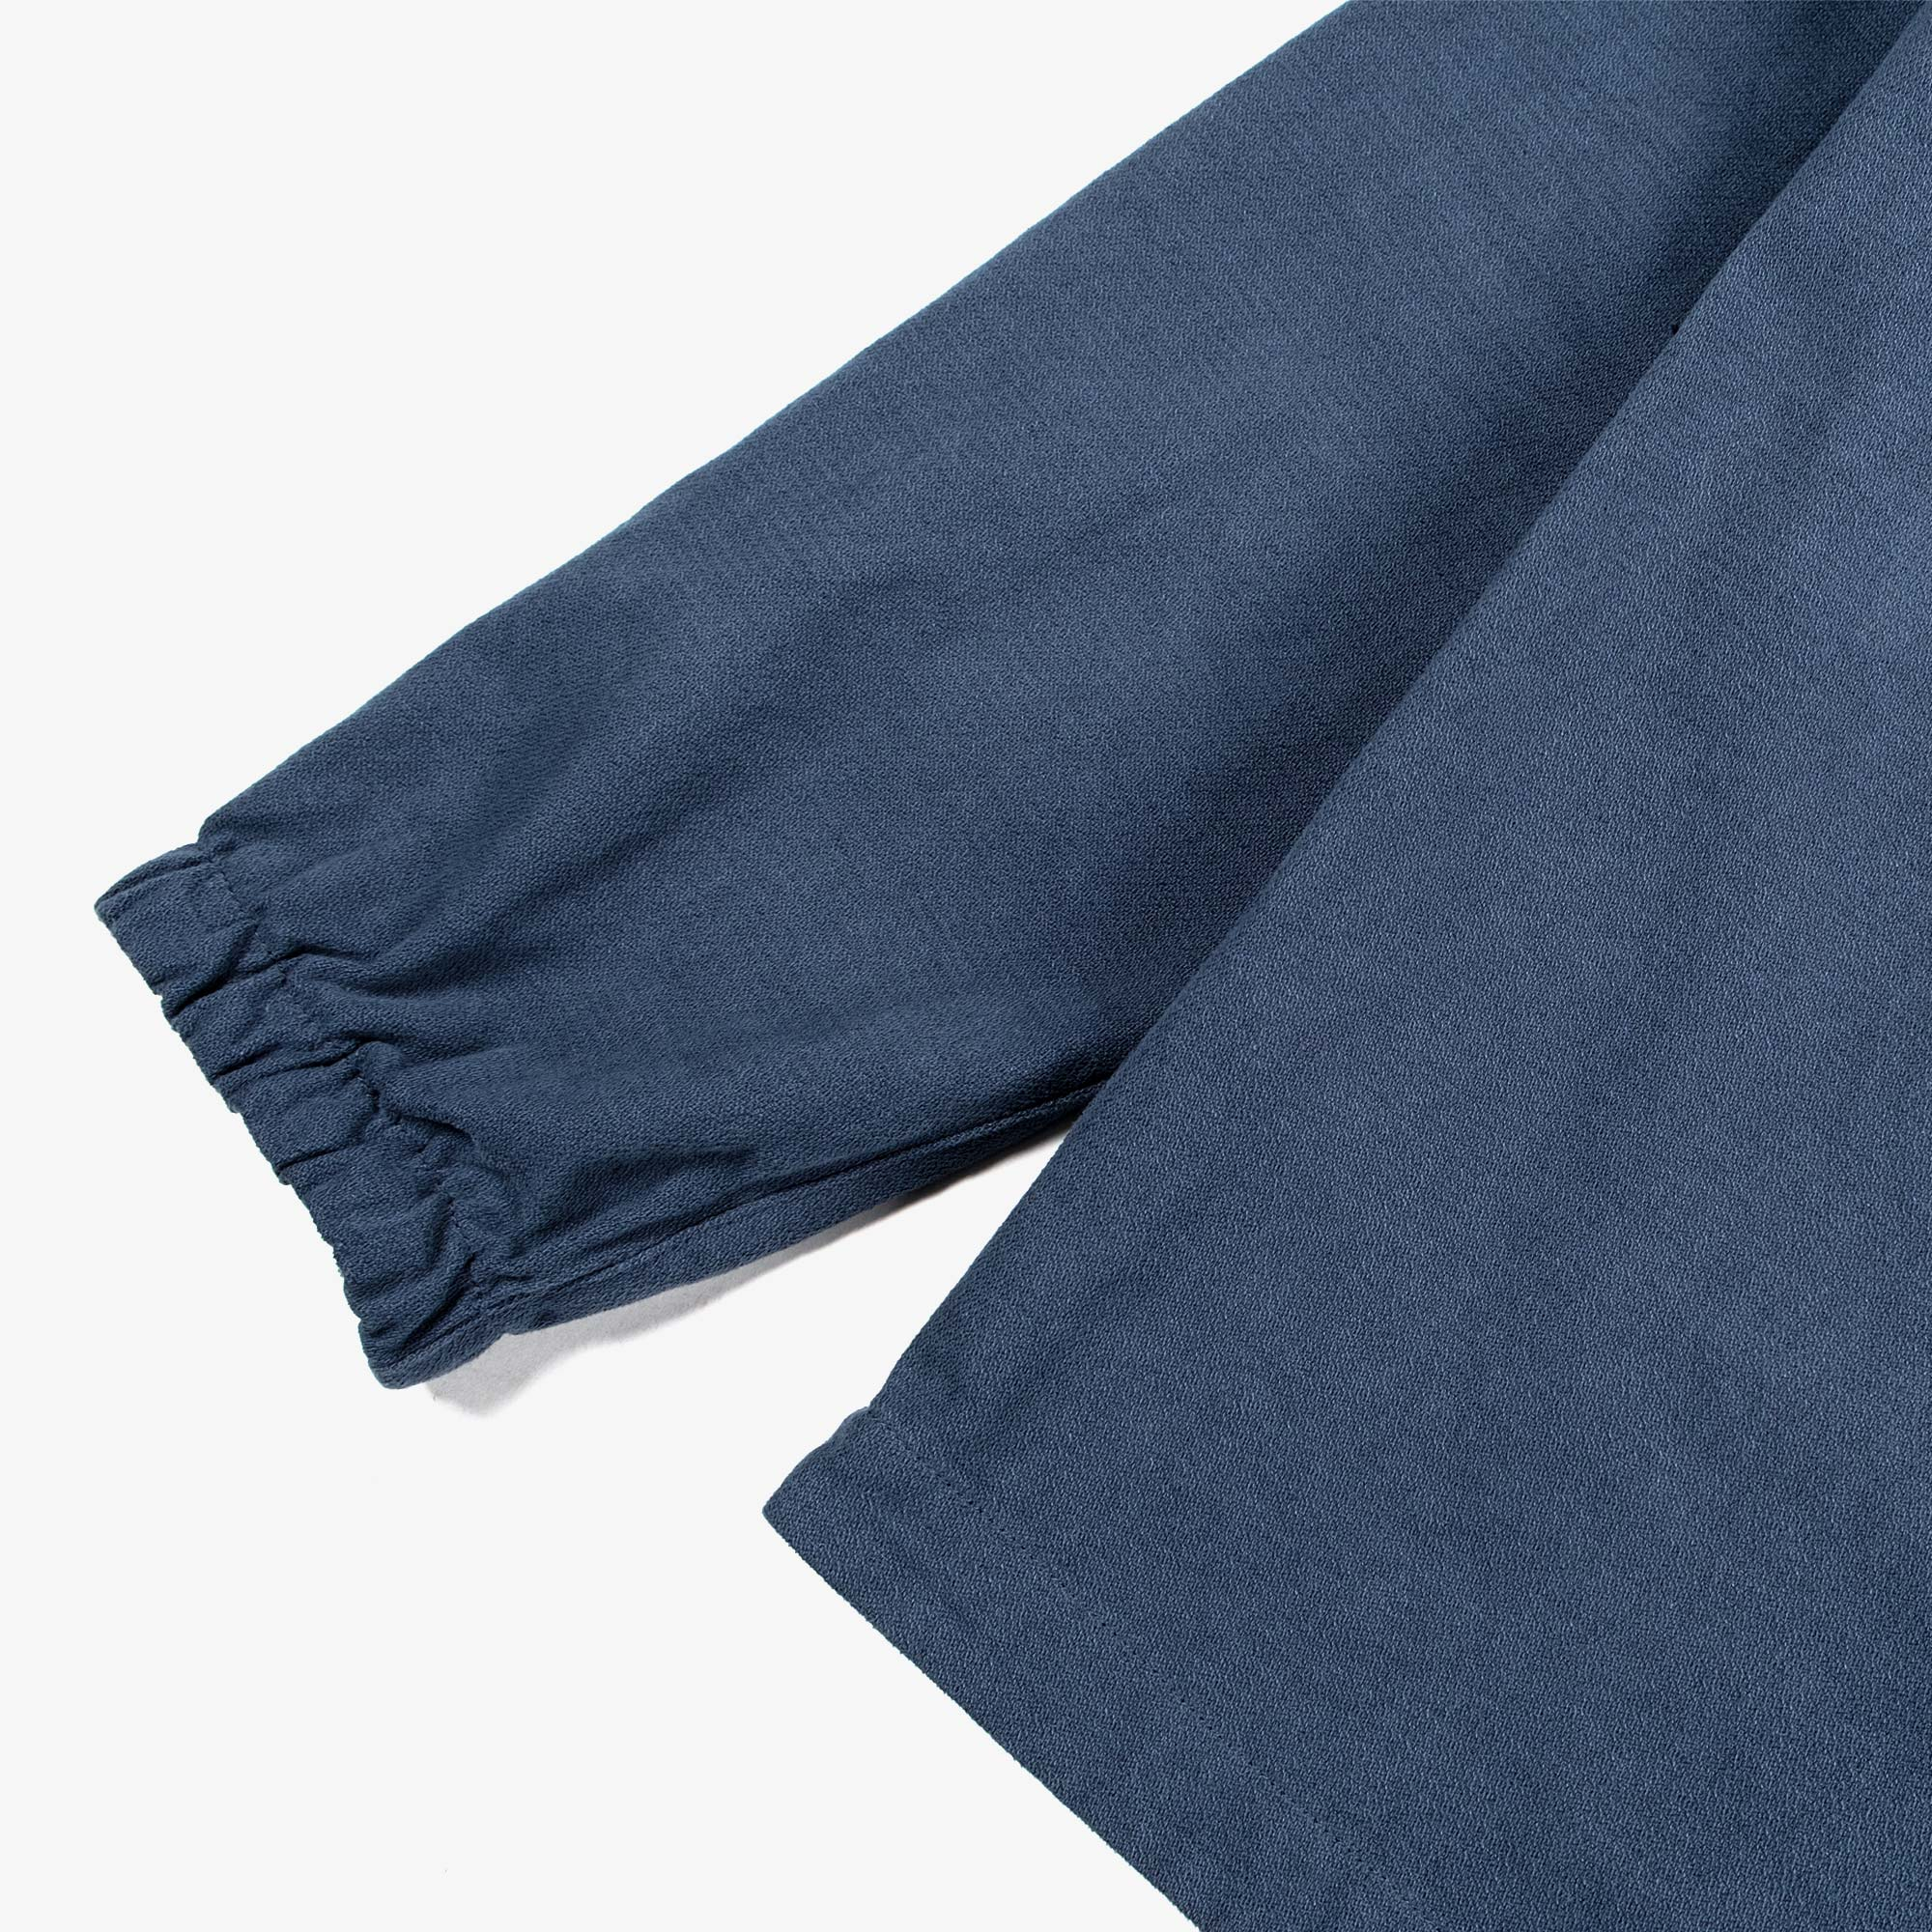 Stone Island Textured Brushed Recycled Cotton Overshirt 10704 - Cobalt Blue 7